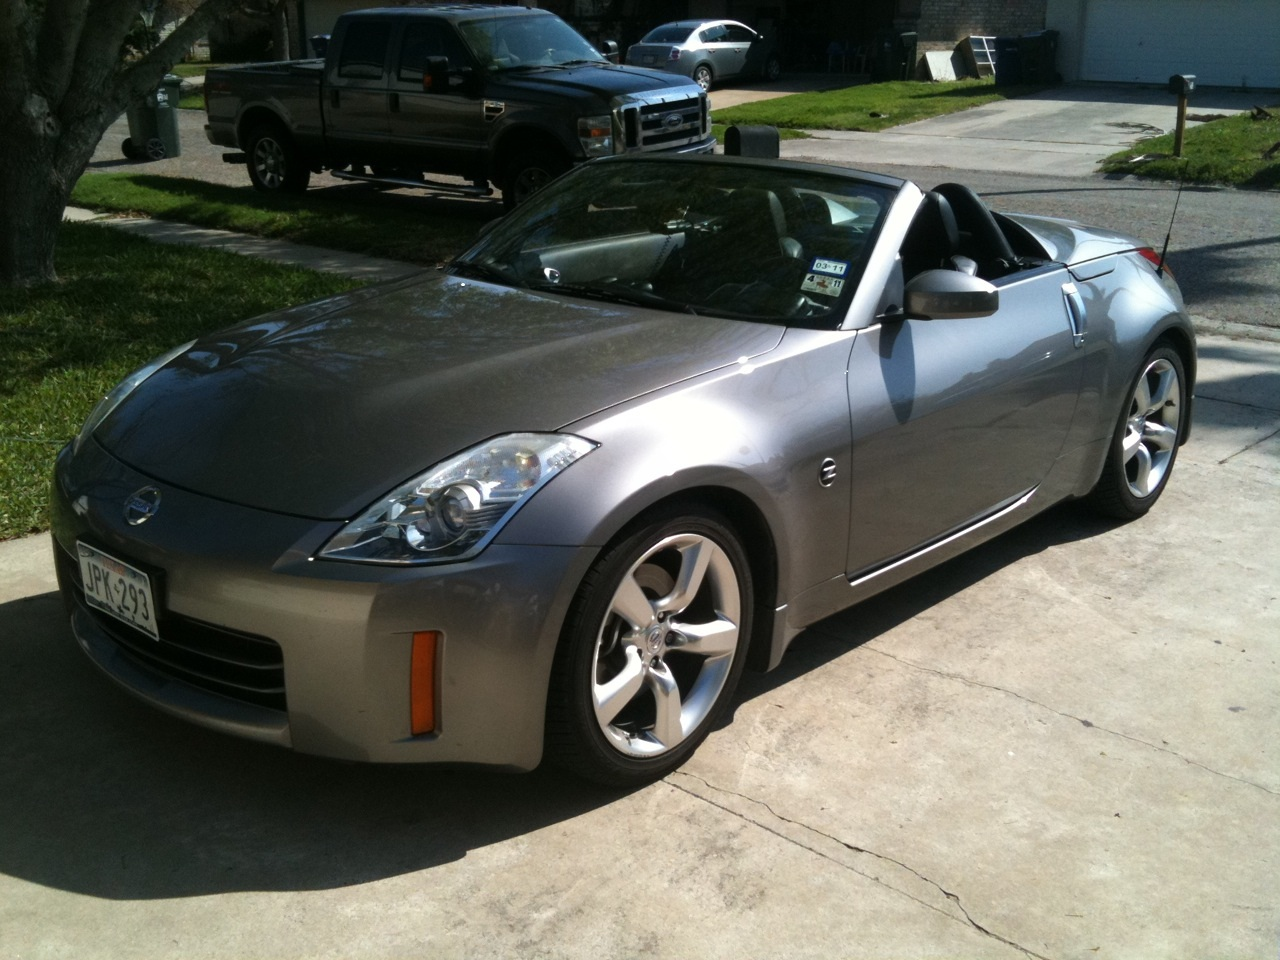 Used 2004 Ford Mustang Picture of 2007 Nissan 350Z Touring Roadster, exterior